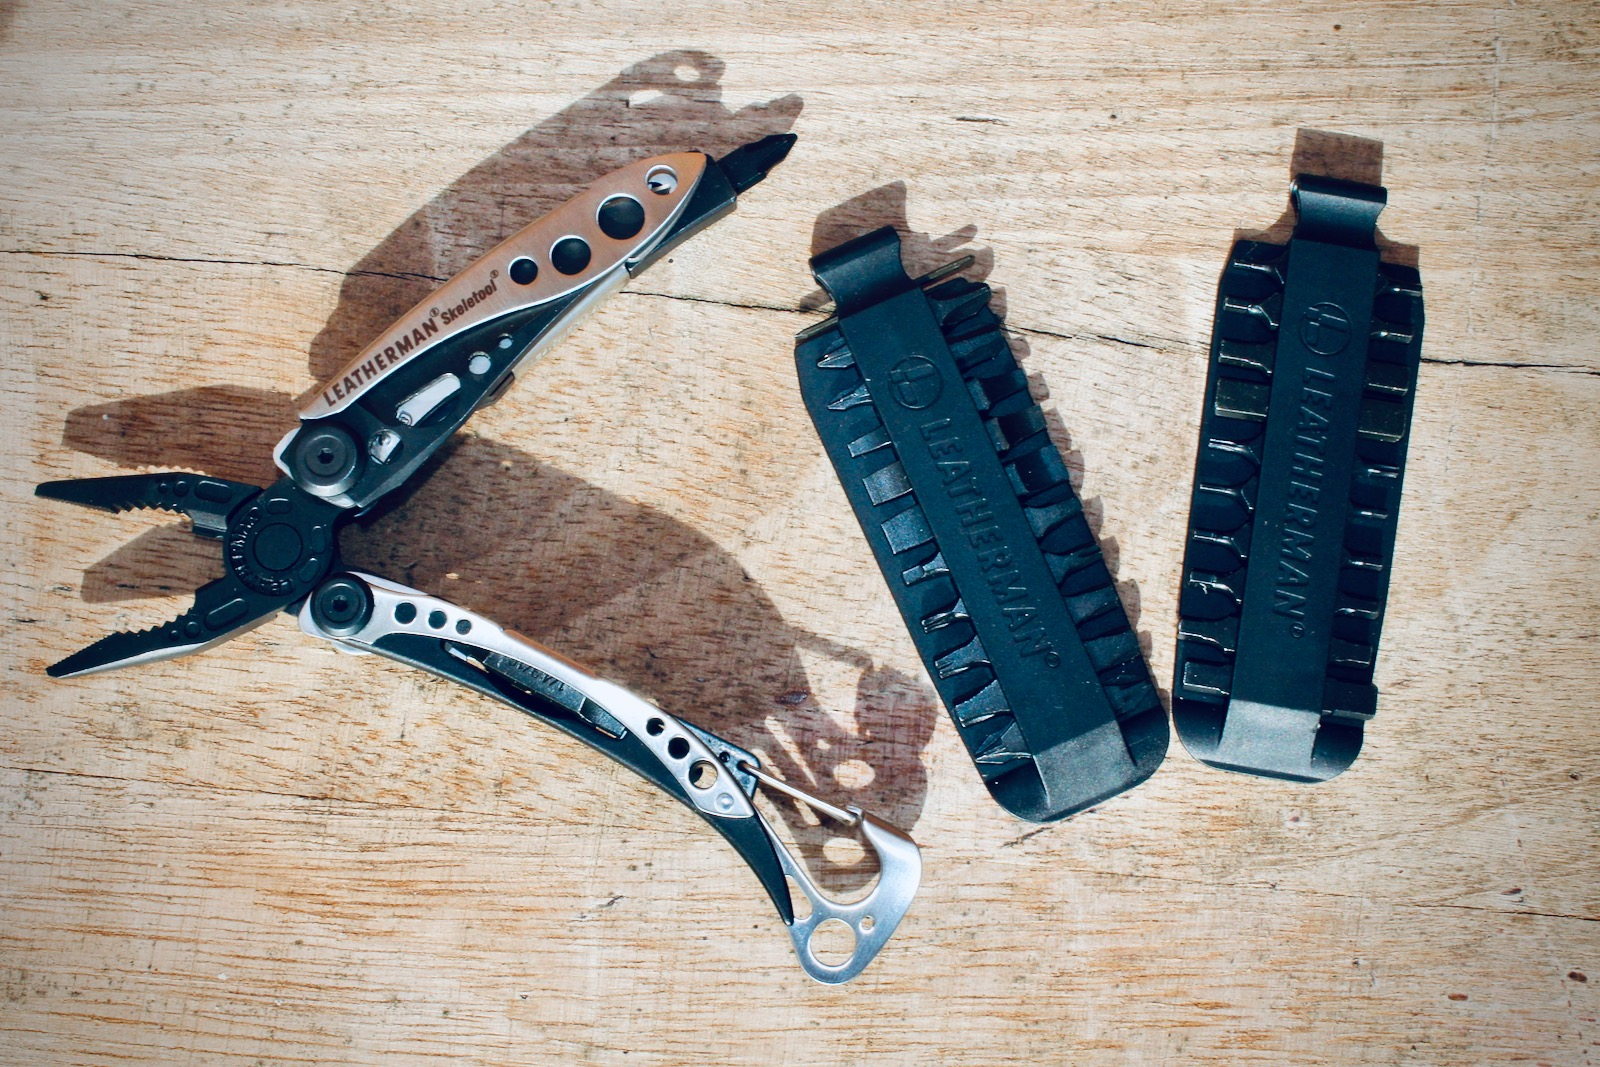 Stainless Steel Multitool with Bits and USA Olympic Case